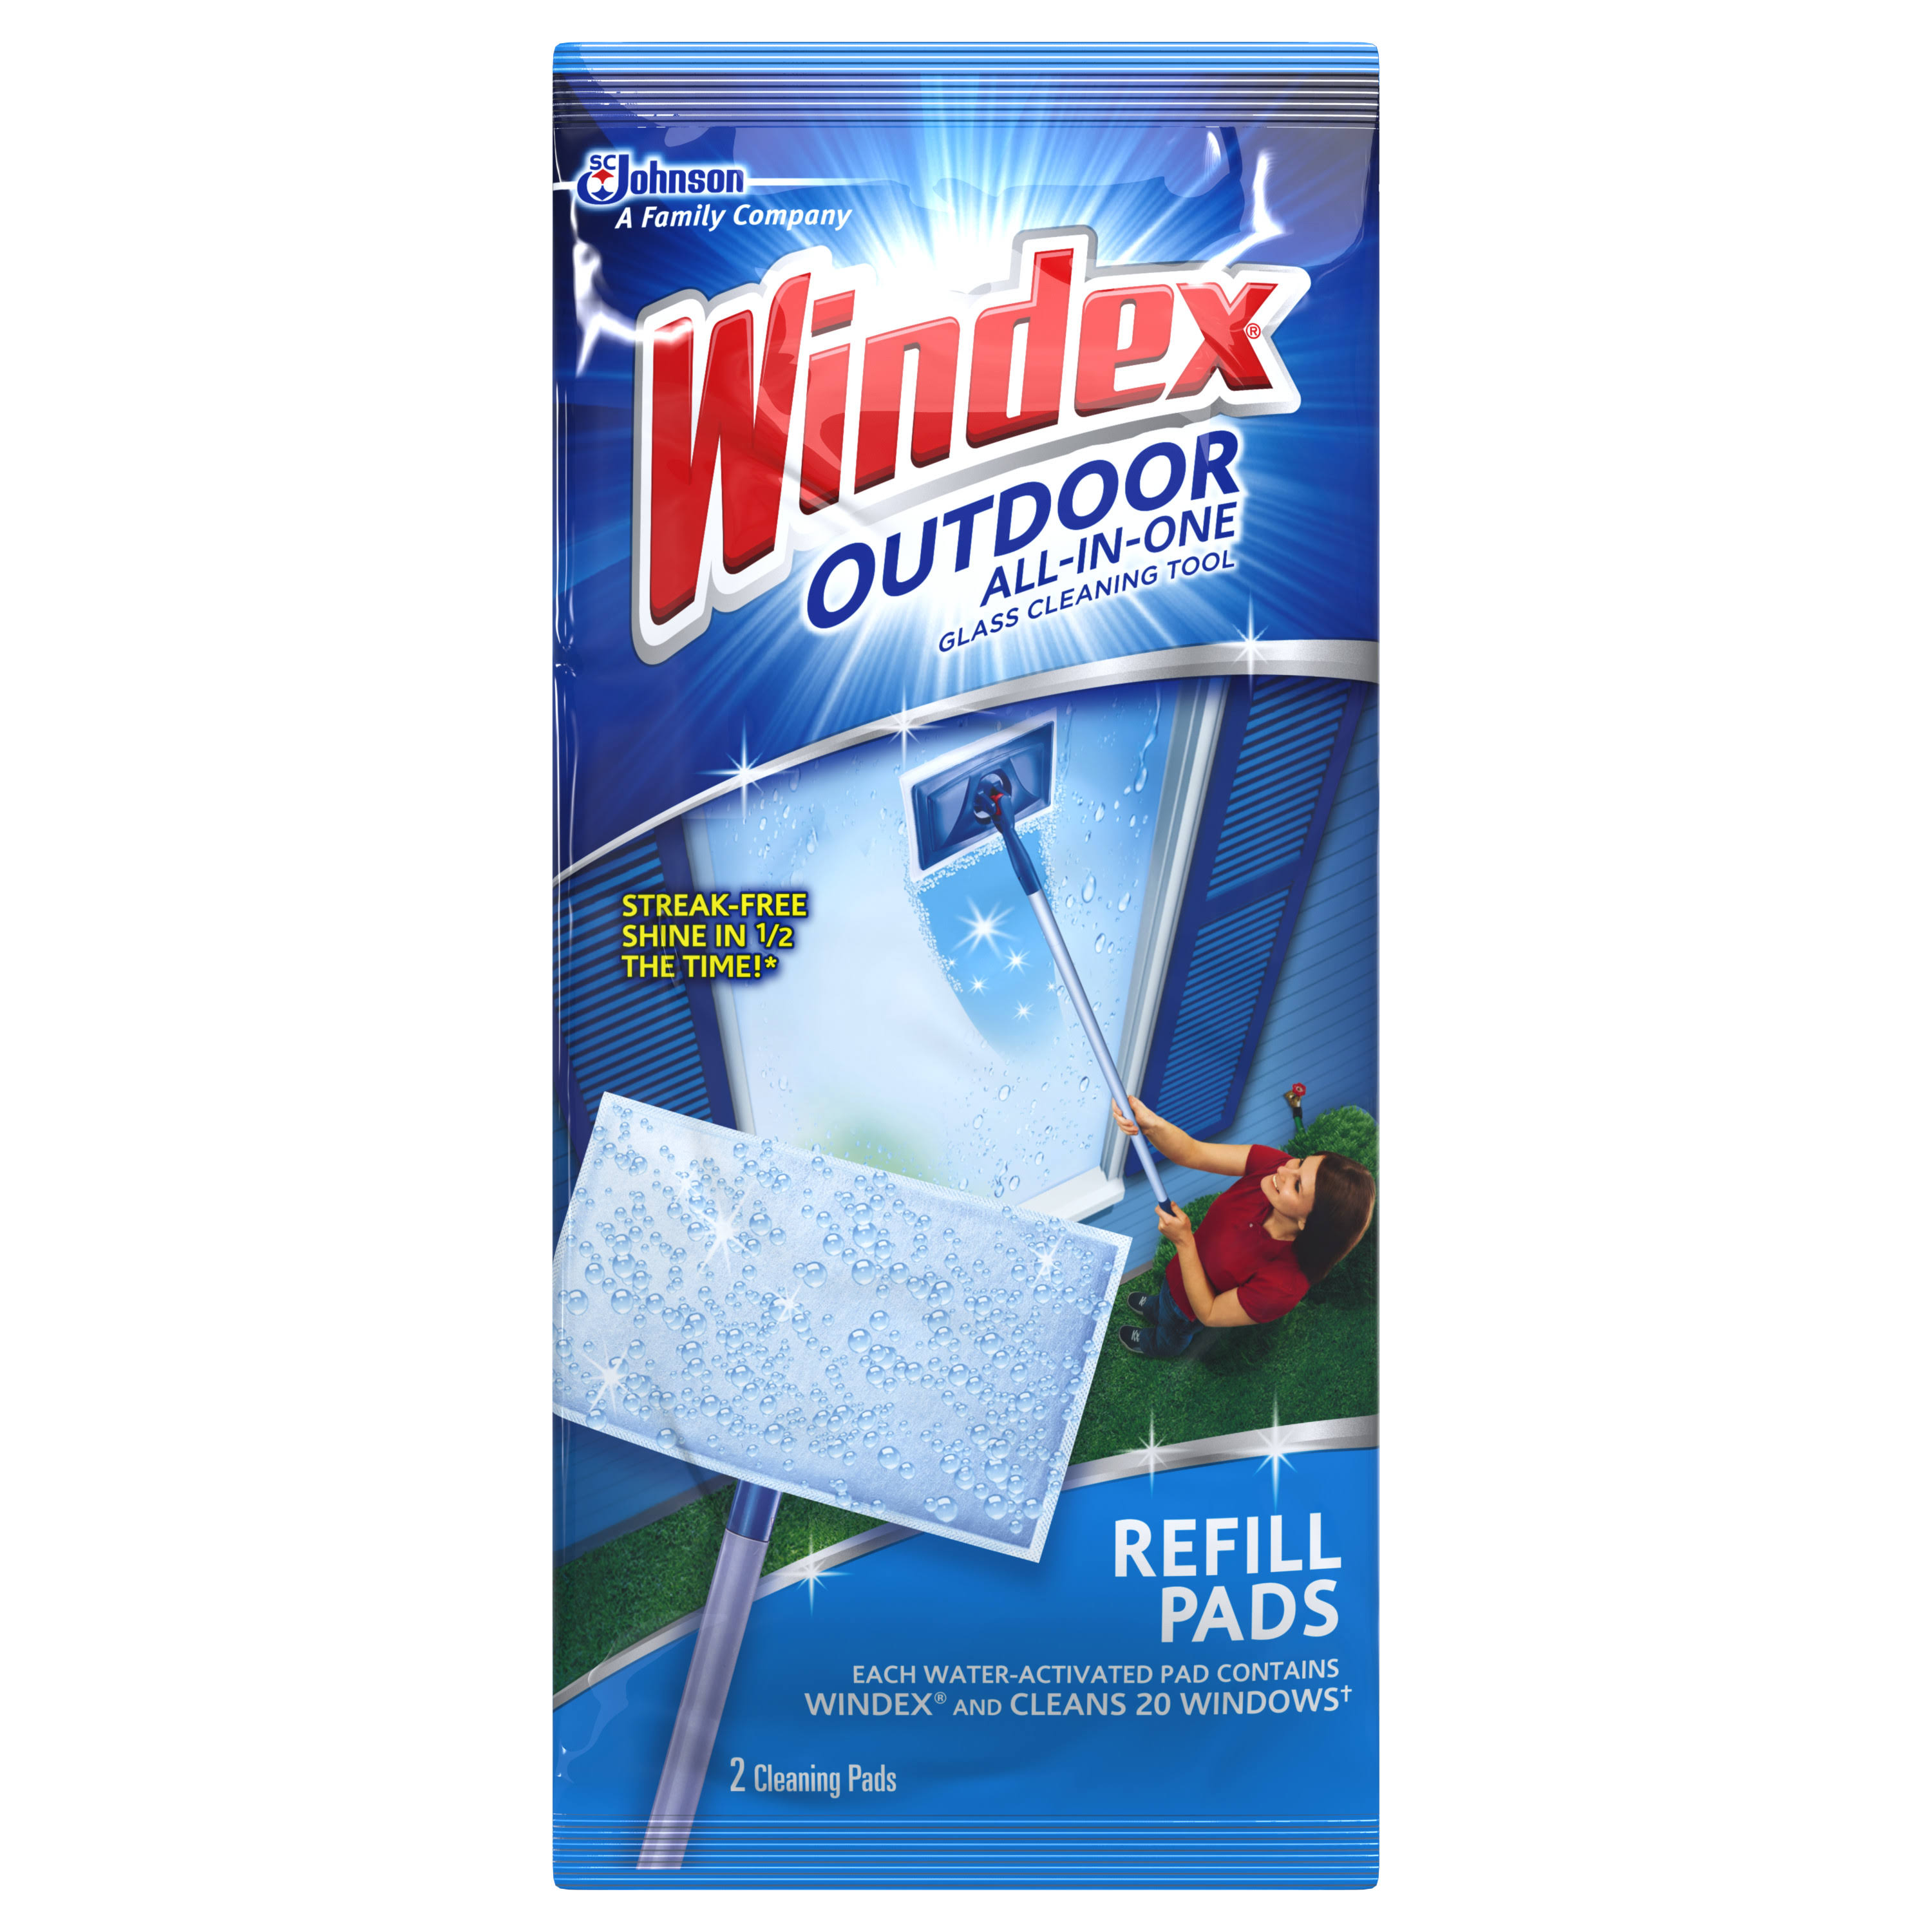 SC Johnson Windex Outdoor All-in-One Glass Cleaning Tool Refill Pads - 2pk